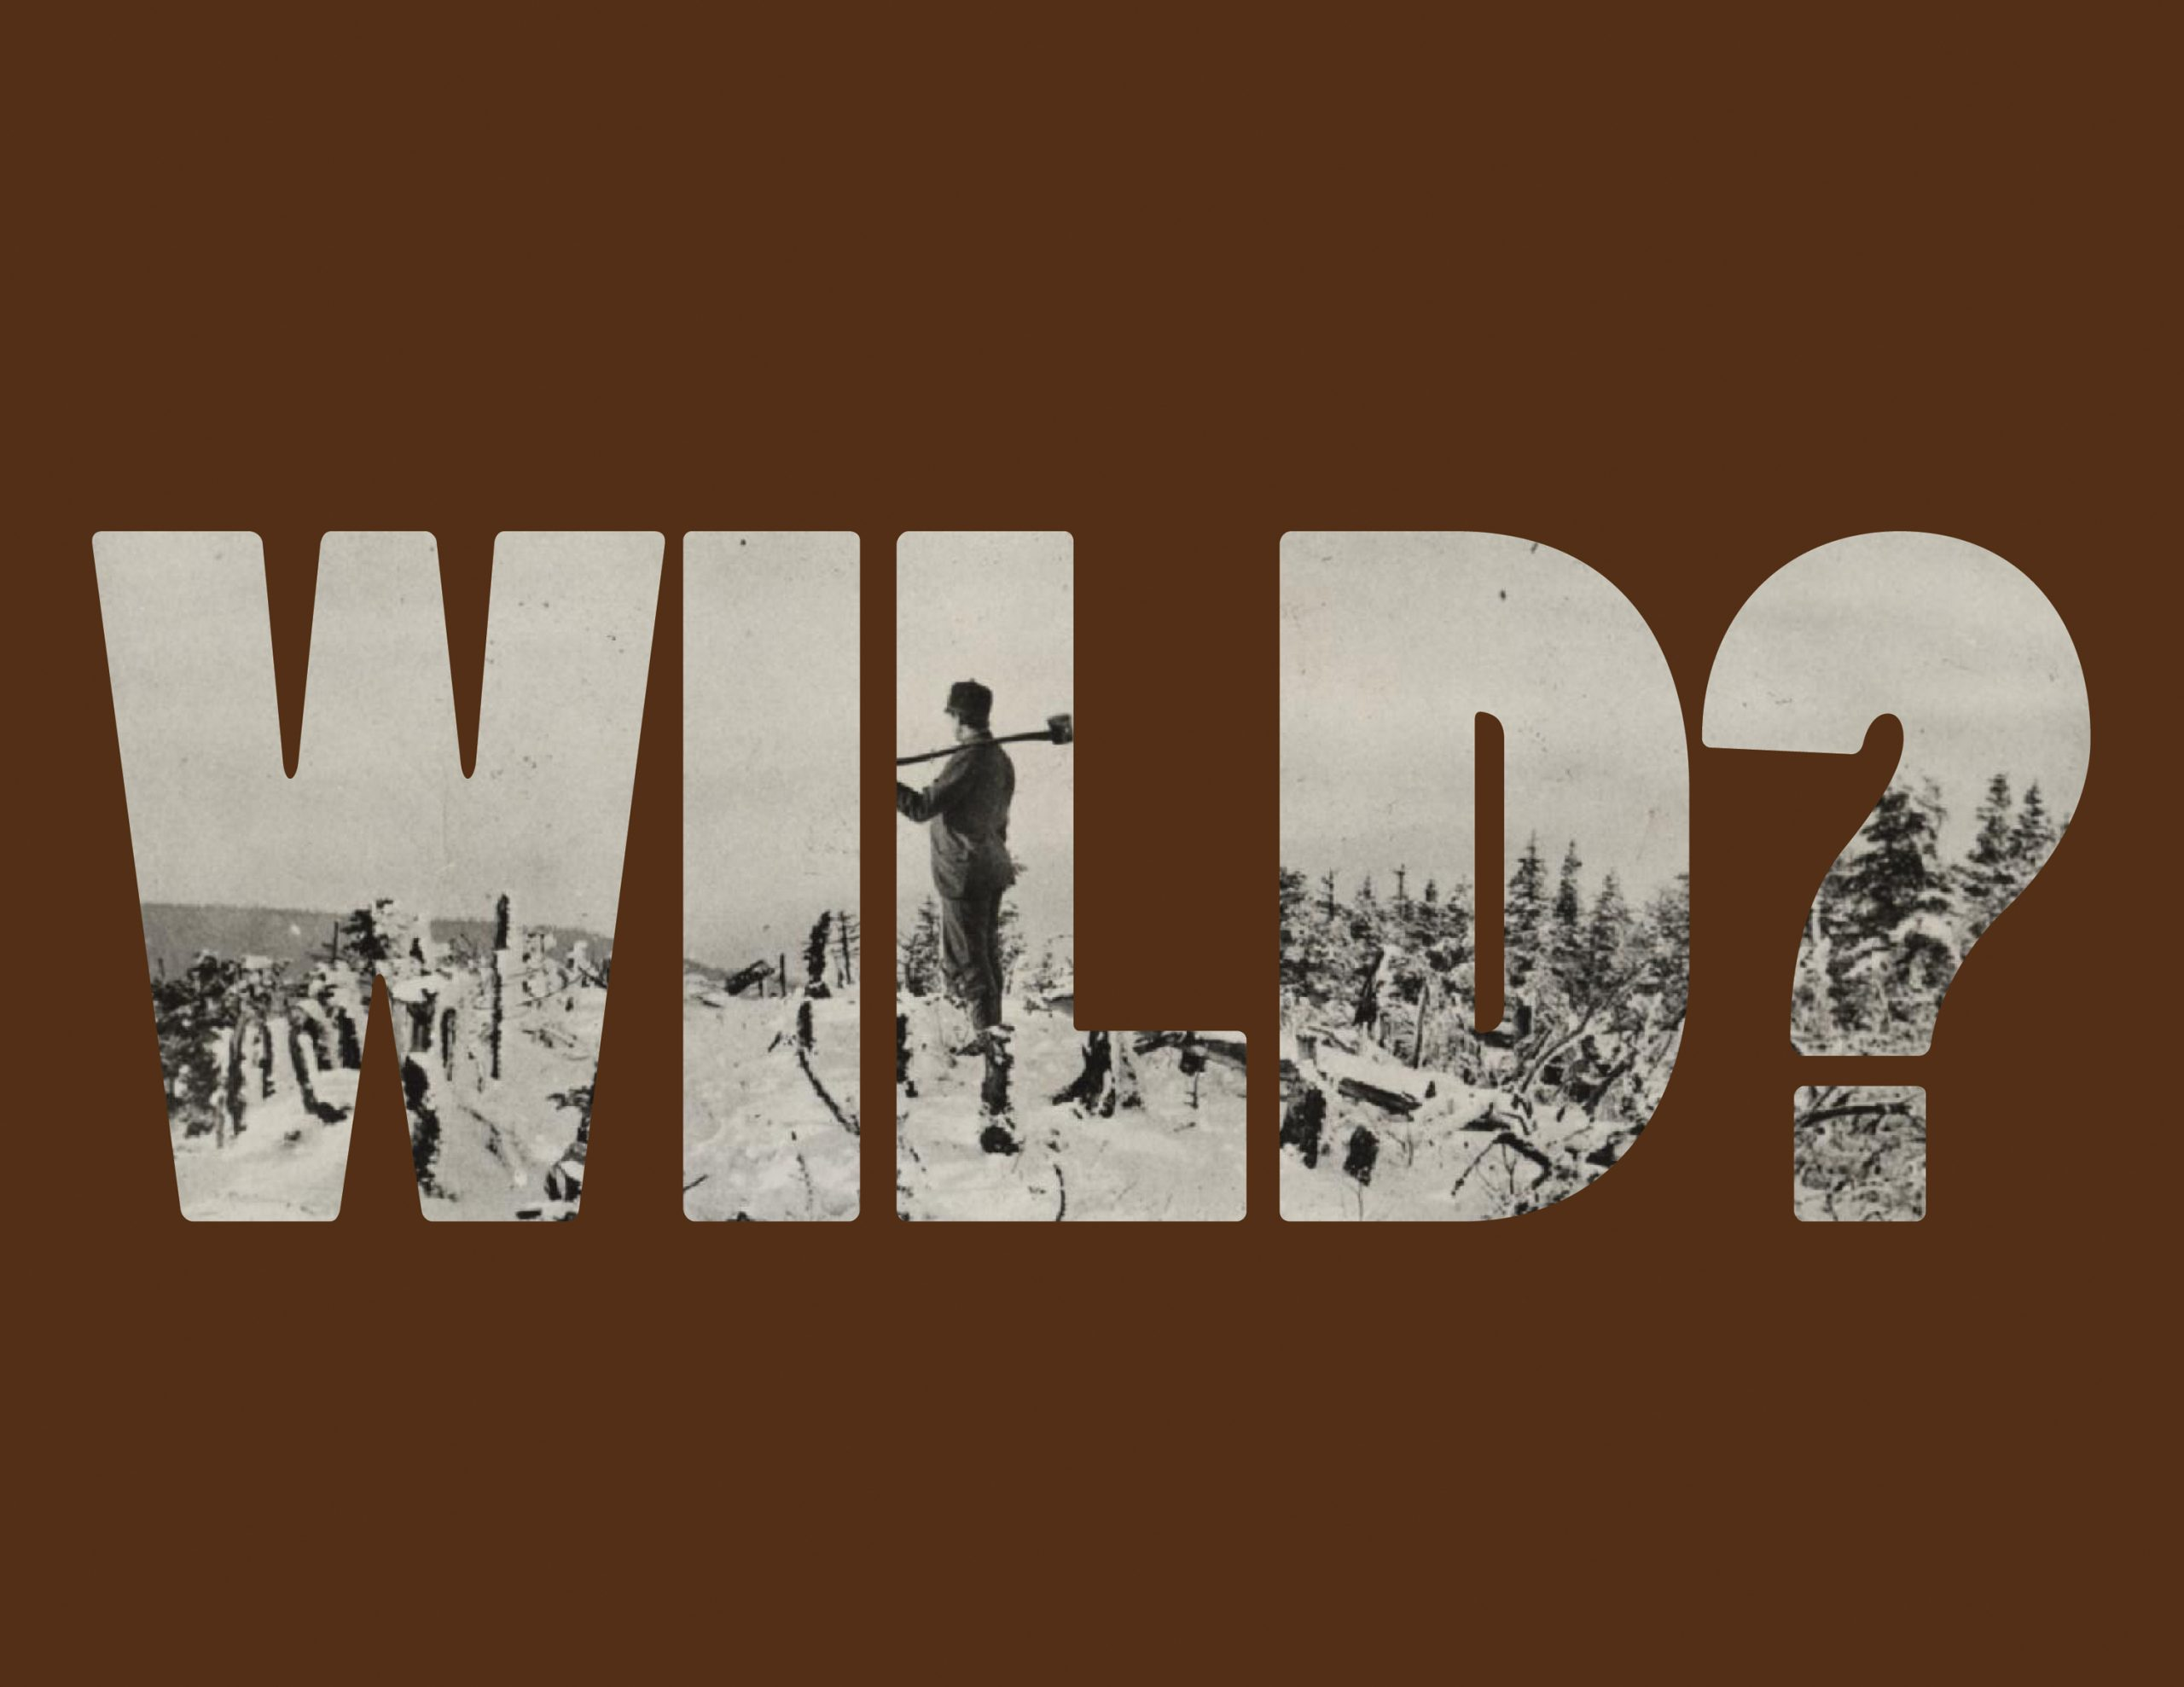 Project image 4 for Worked / Wild, Essex County Historical Society